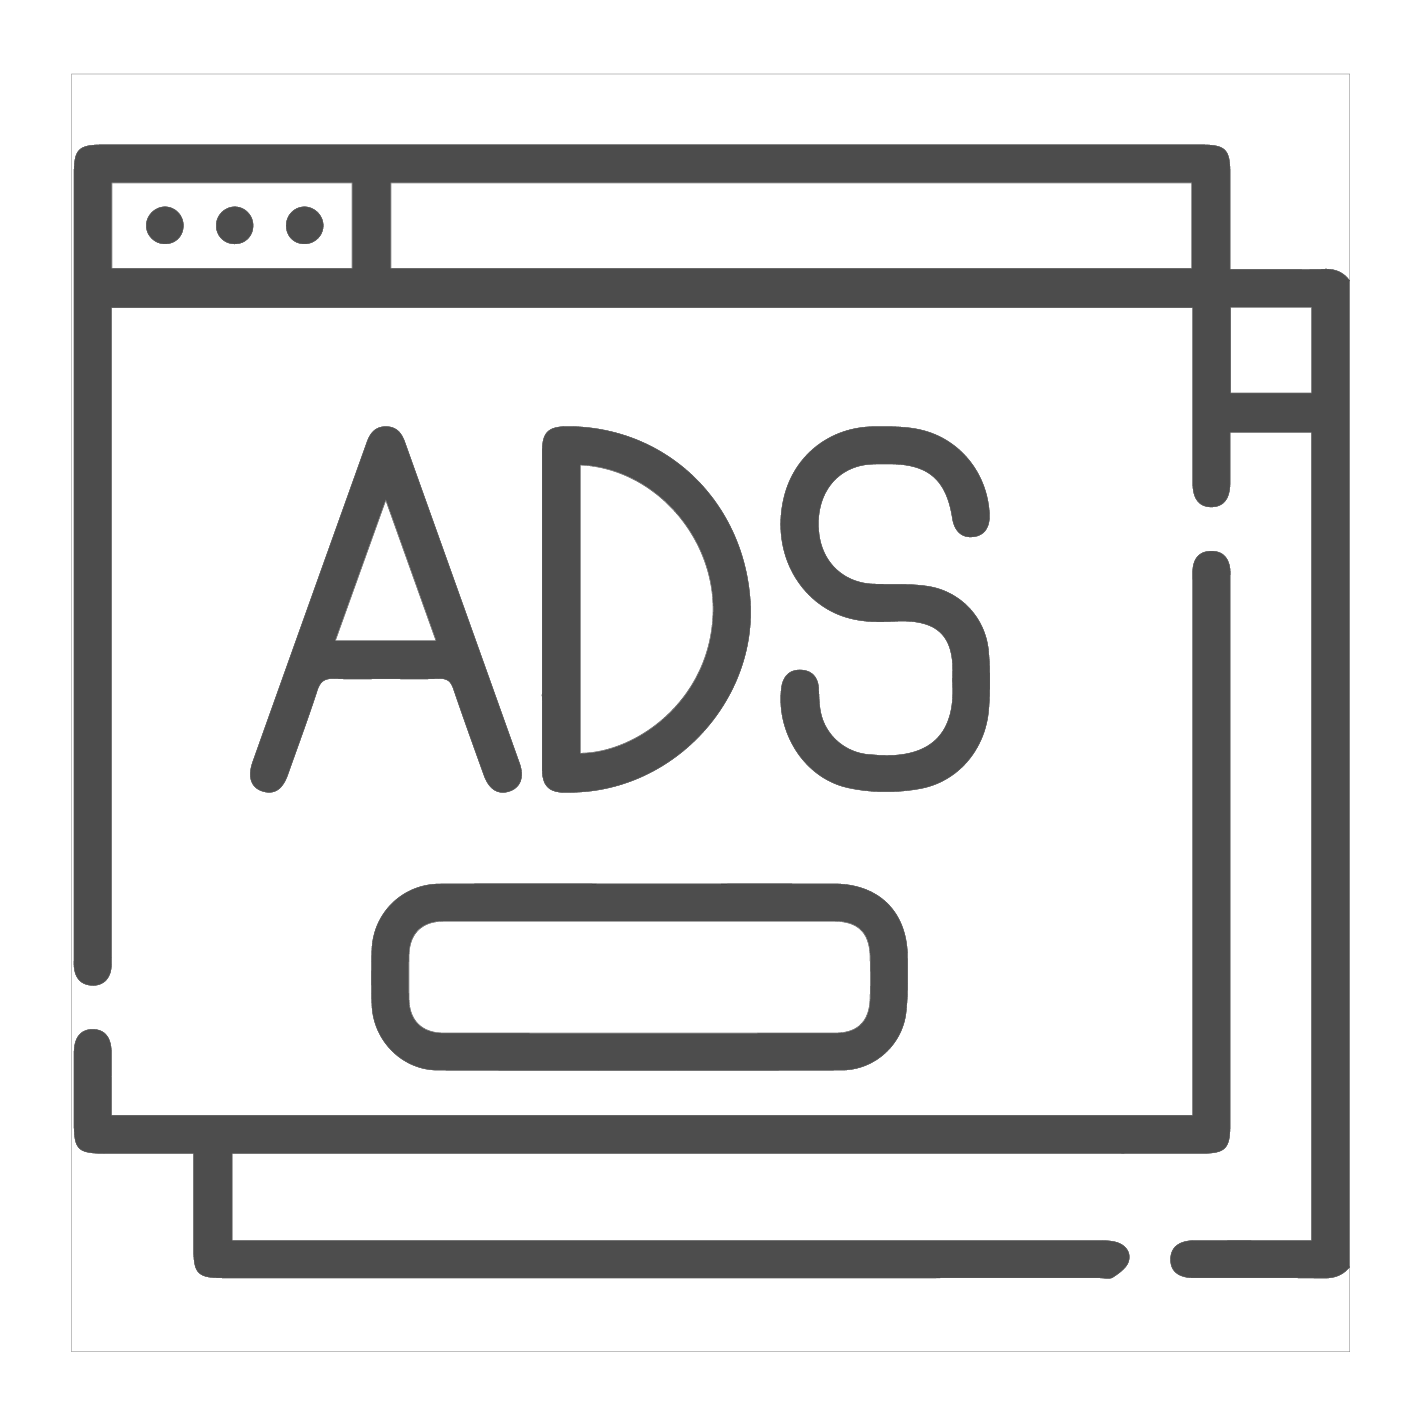 Google Ads - Find out how to qualify for $10,000-$30,000 of Google Ads at no cost to your organization.